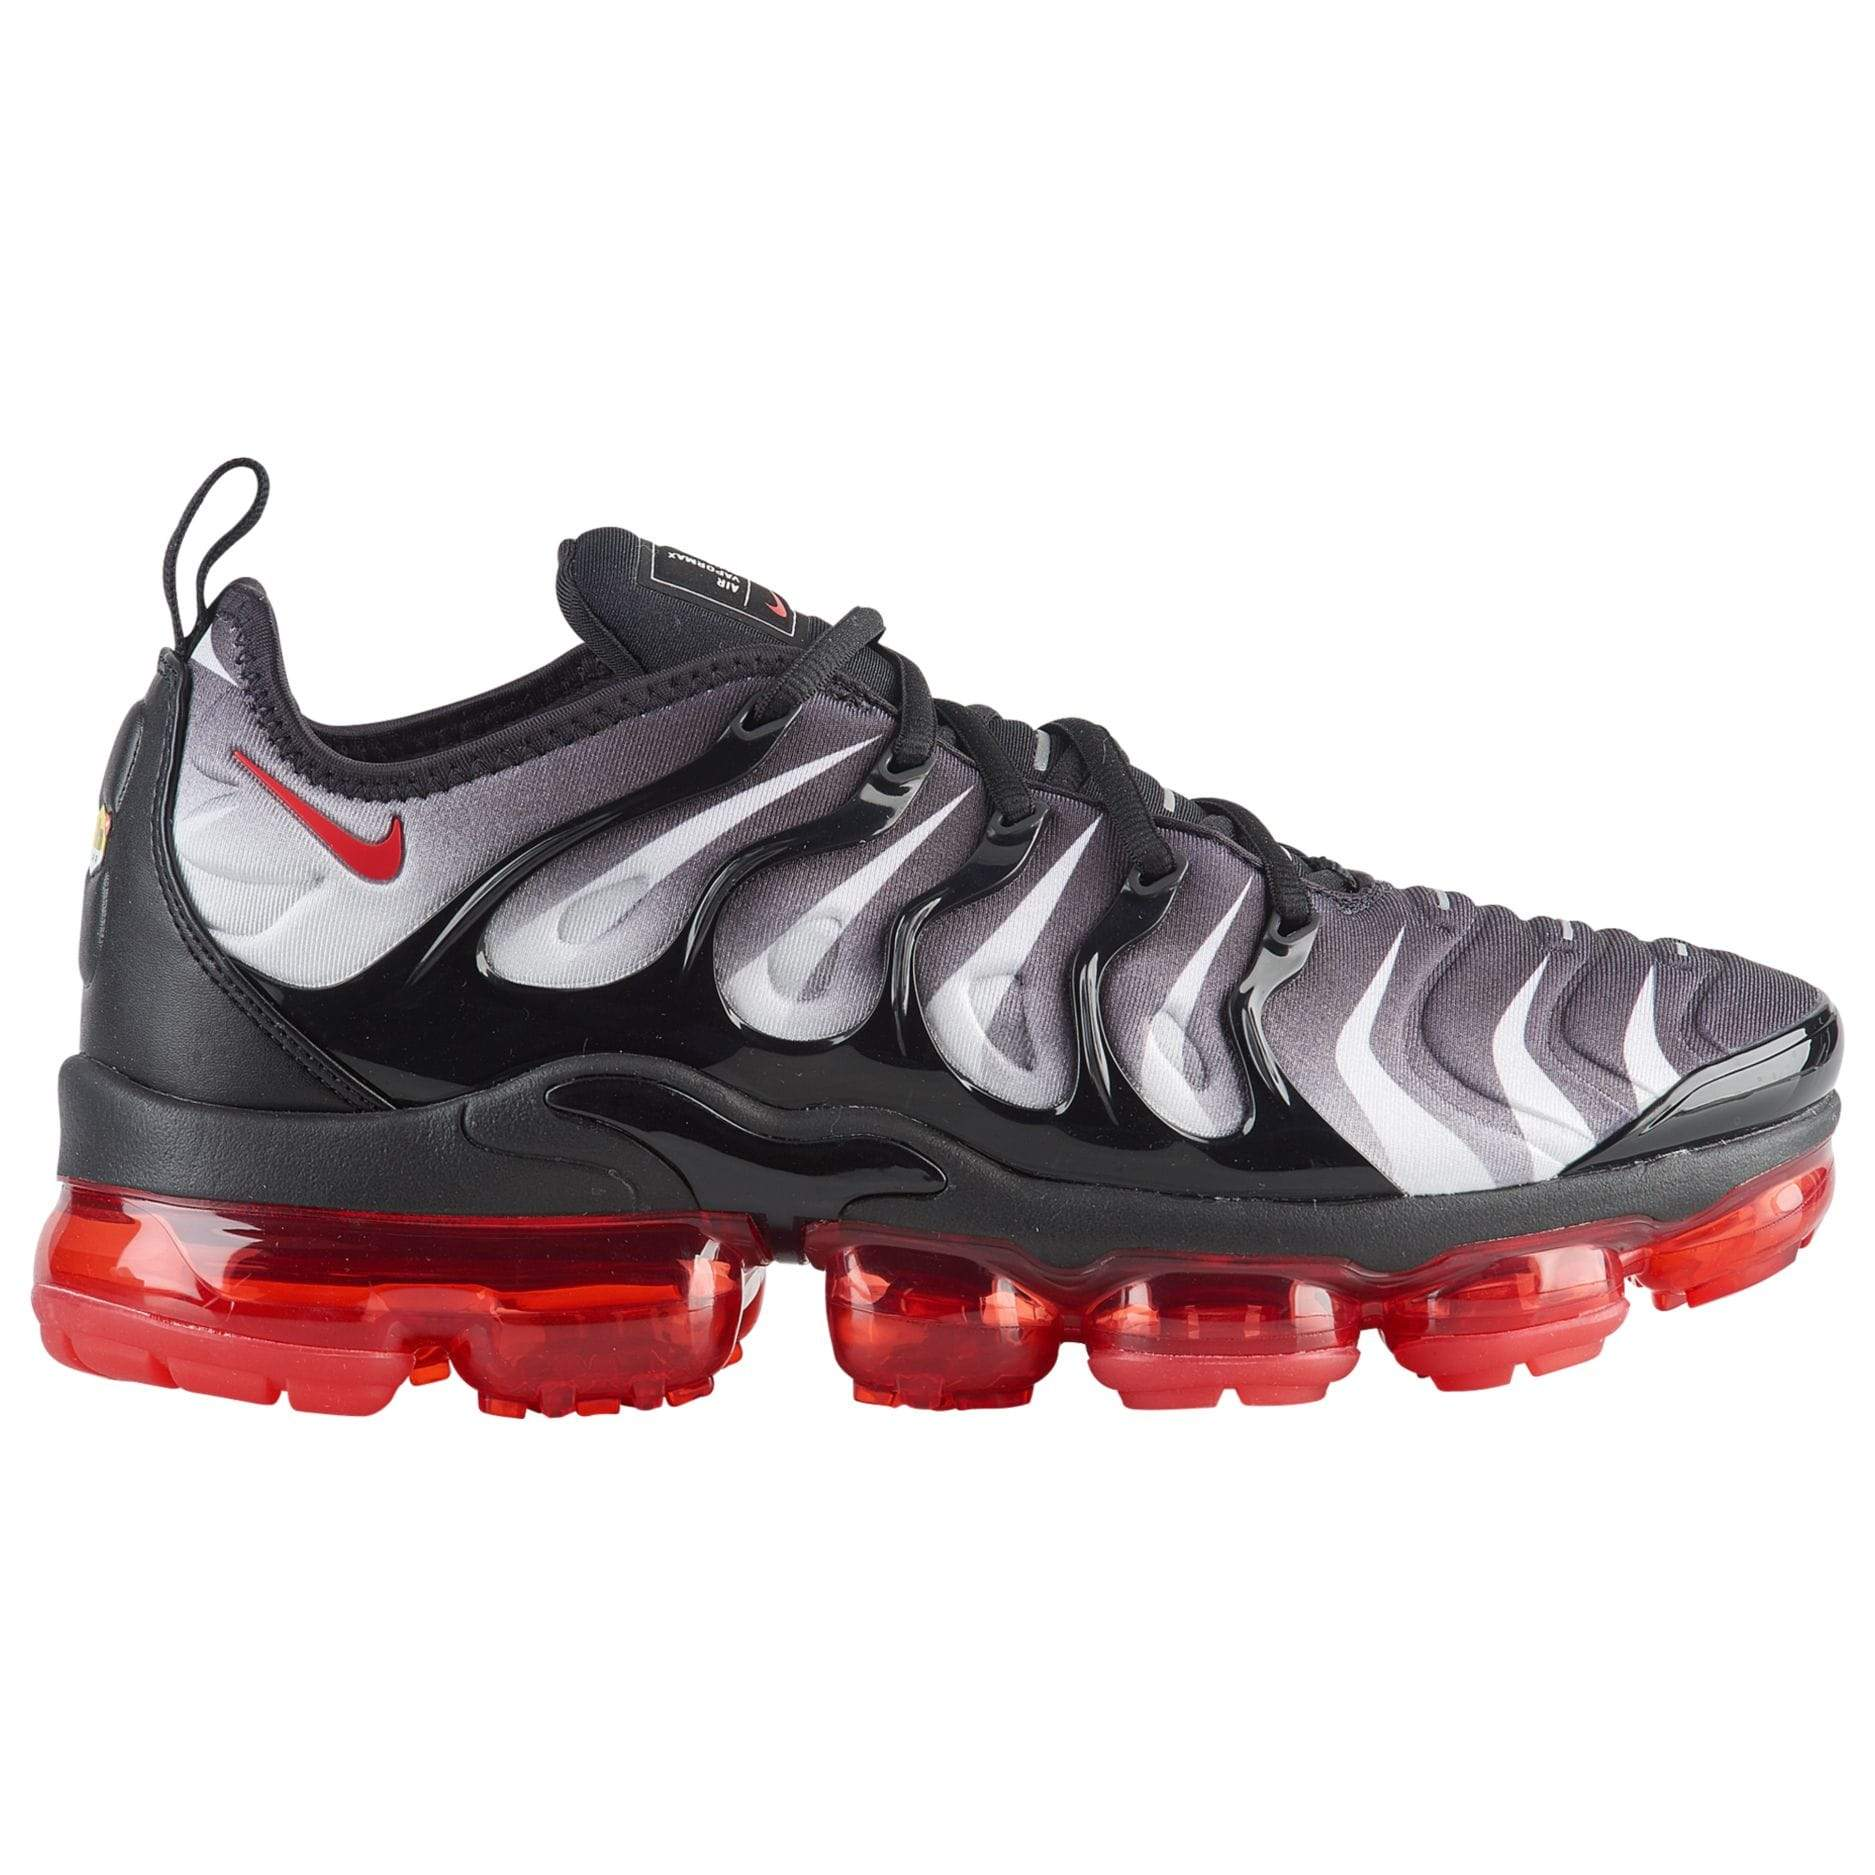 low priced 3a988 a9b0e Nike Air Vapormax Plus Black/Speed Red/White Men's Shoes